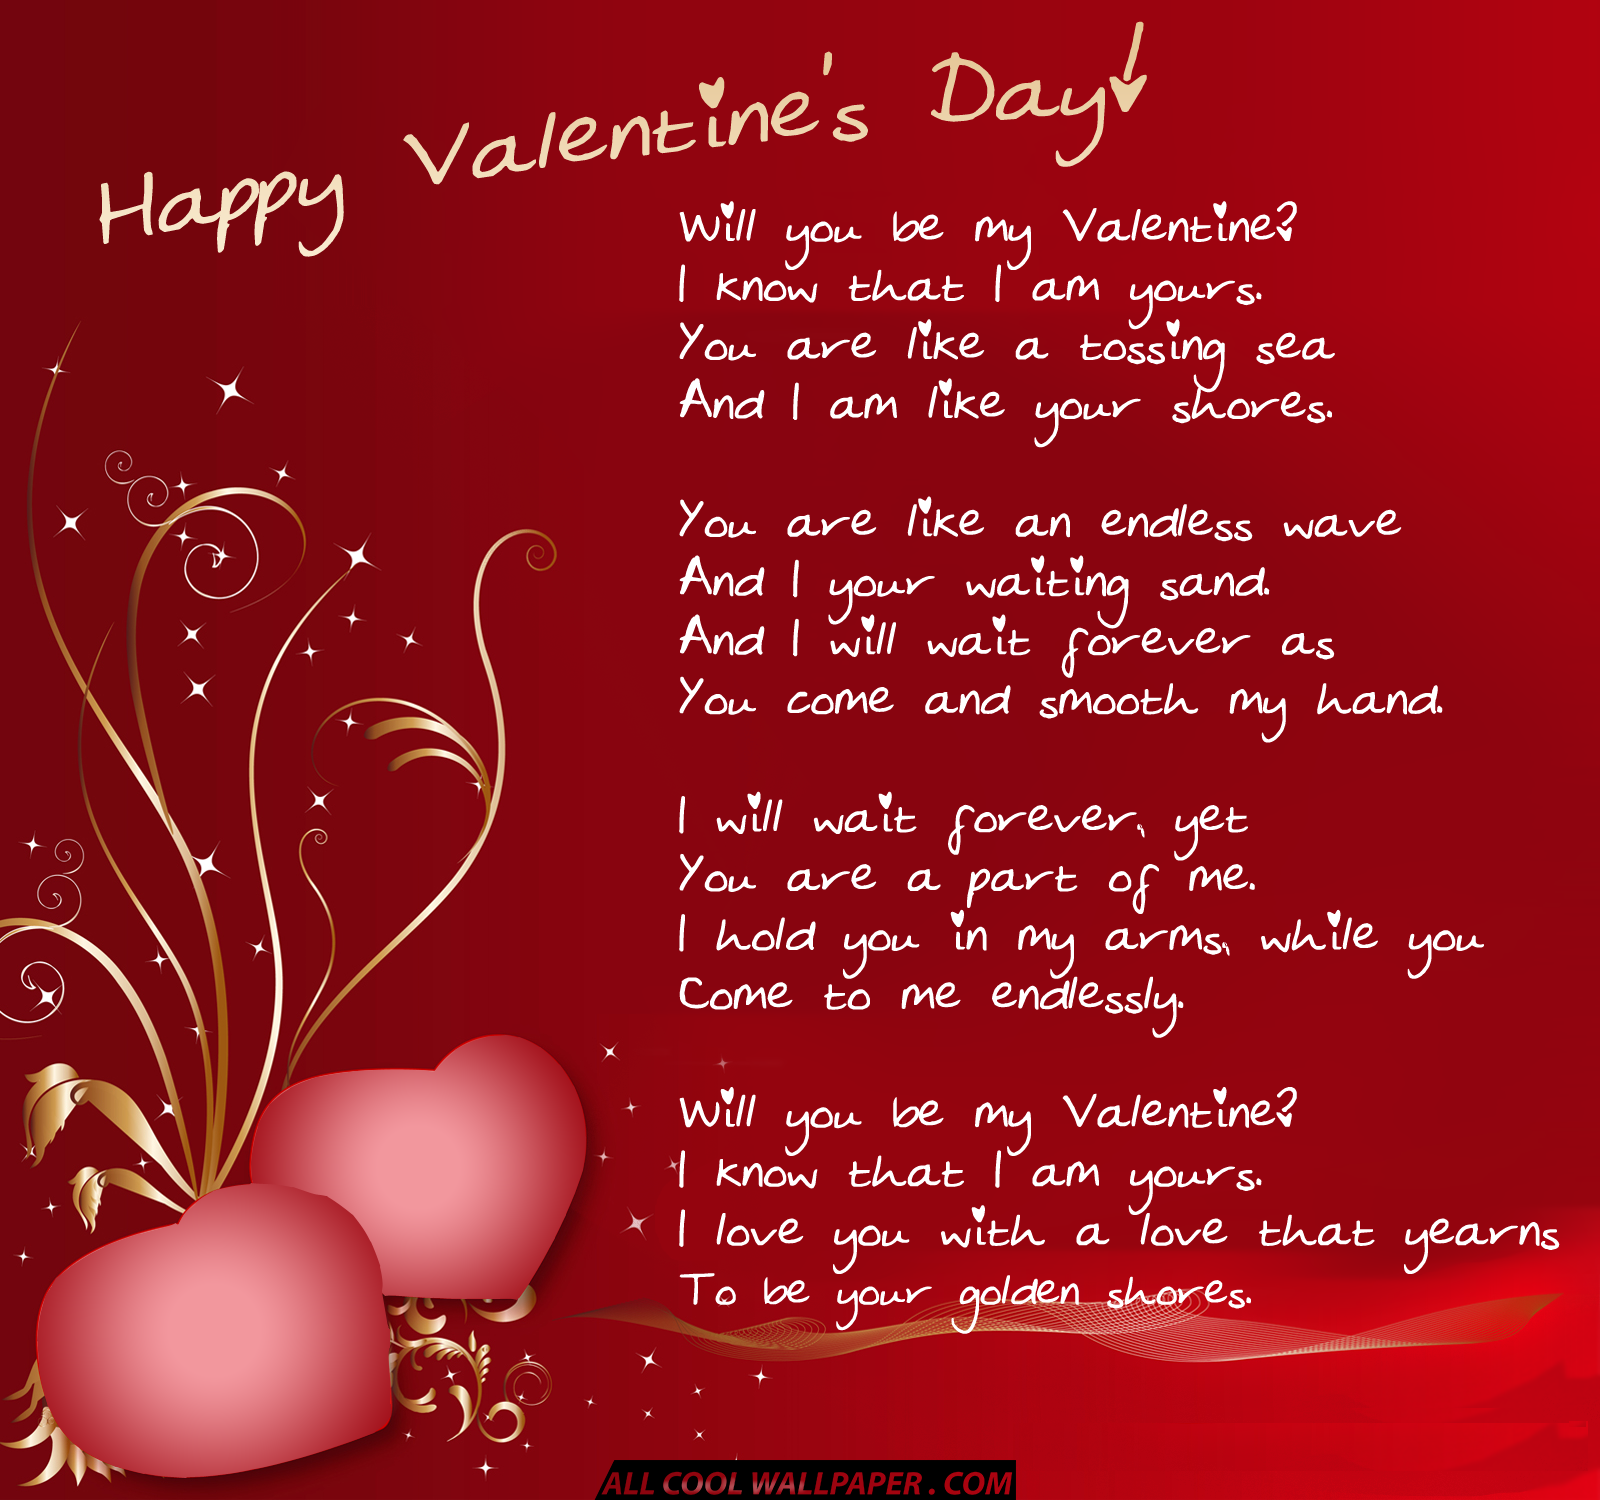 Heart Touching Valentines Day Poem - Valentine Day Specials